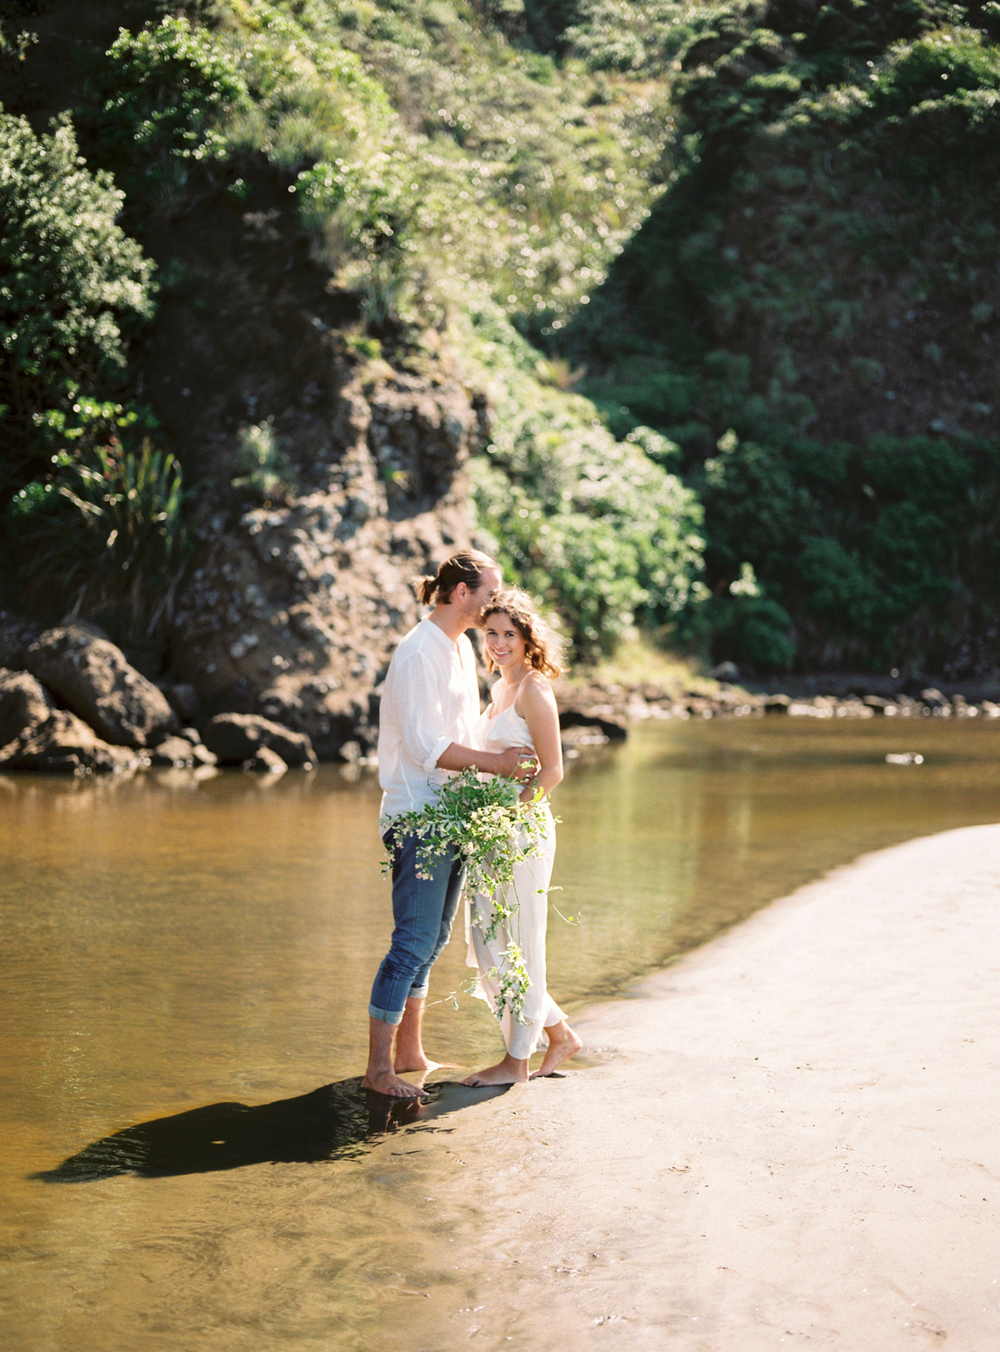 Destination wedding photographer New Zealand